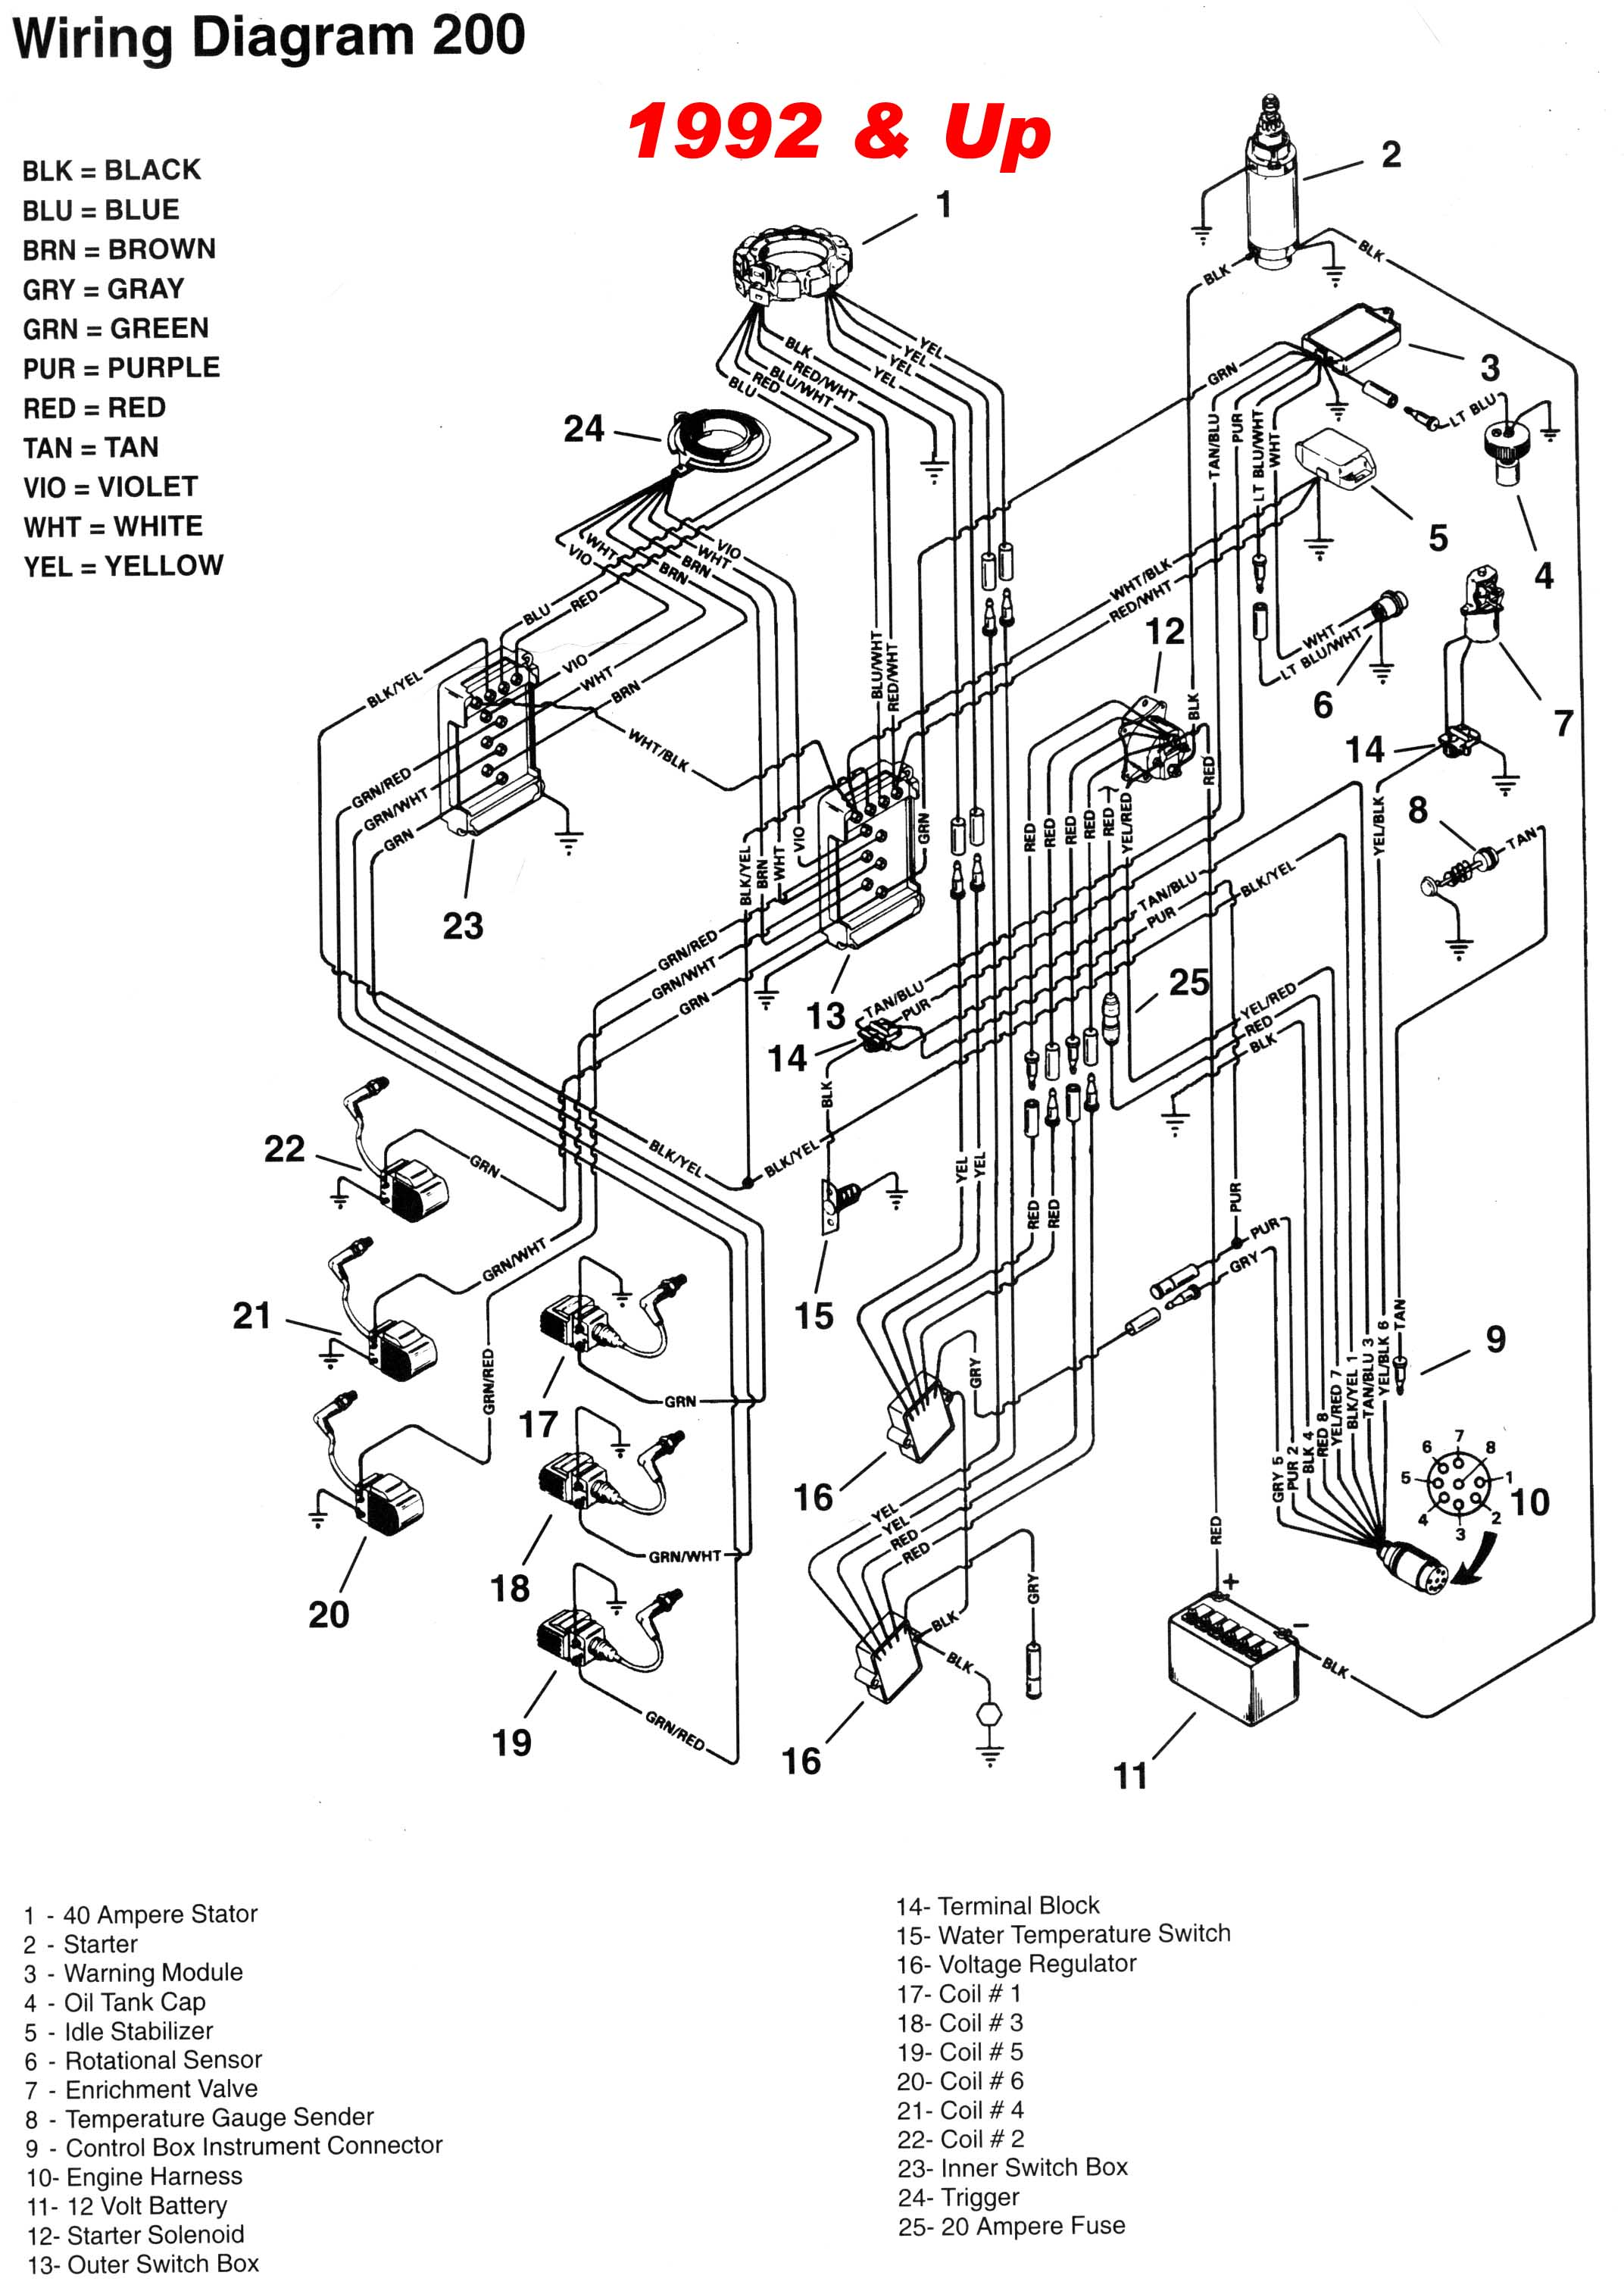 Merc Wiring Harness Diagram Essig Obd1 On Amp Bypass Online